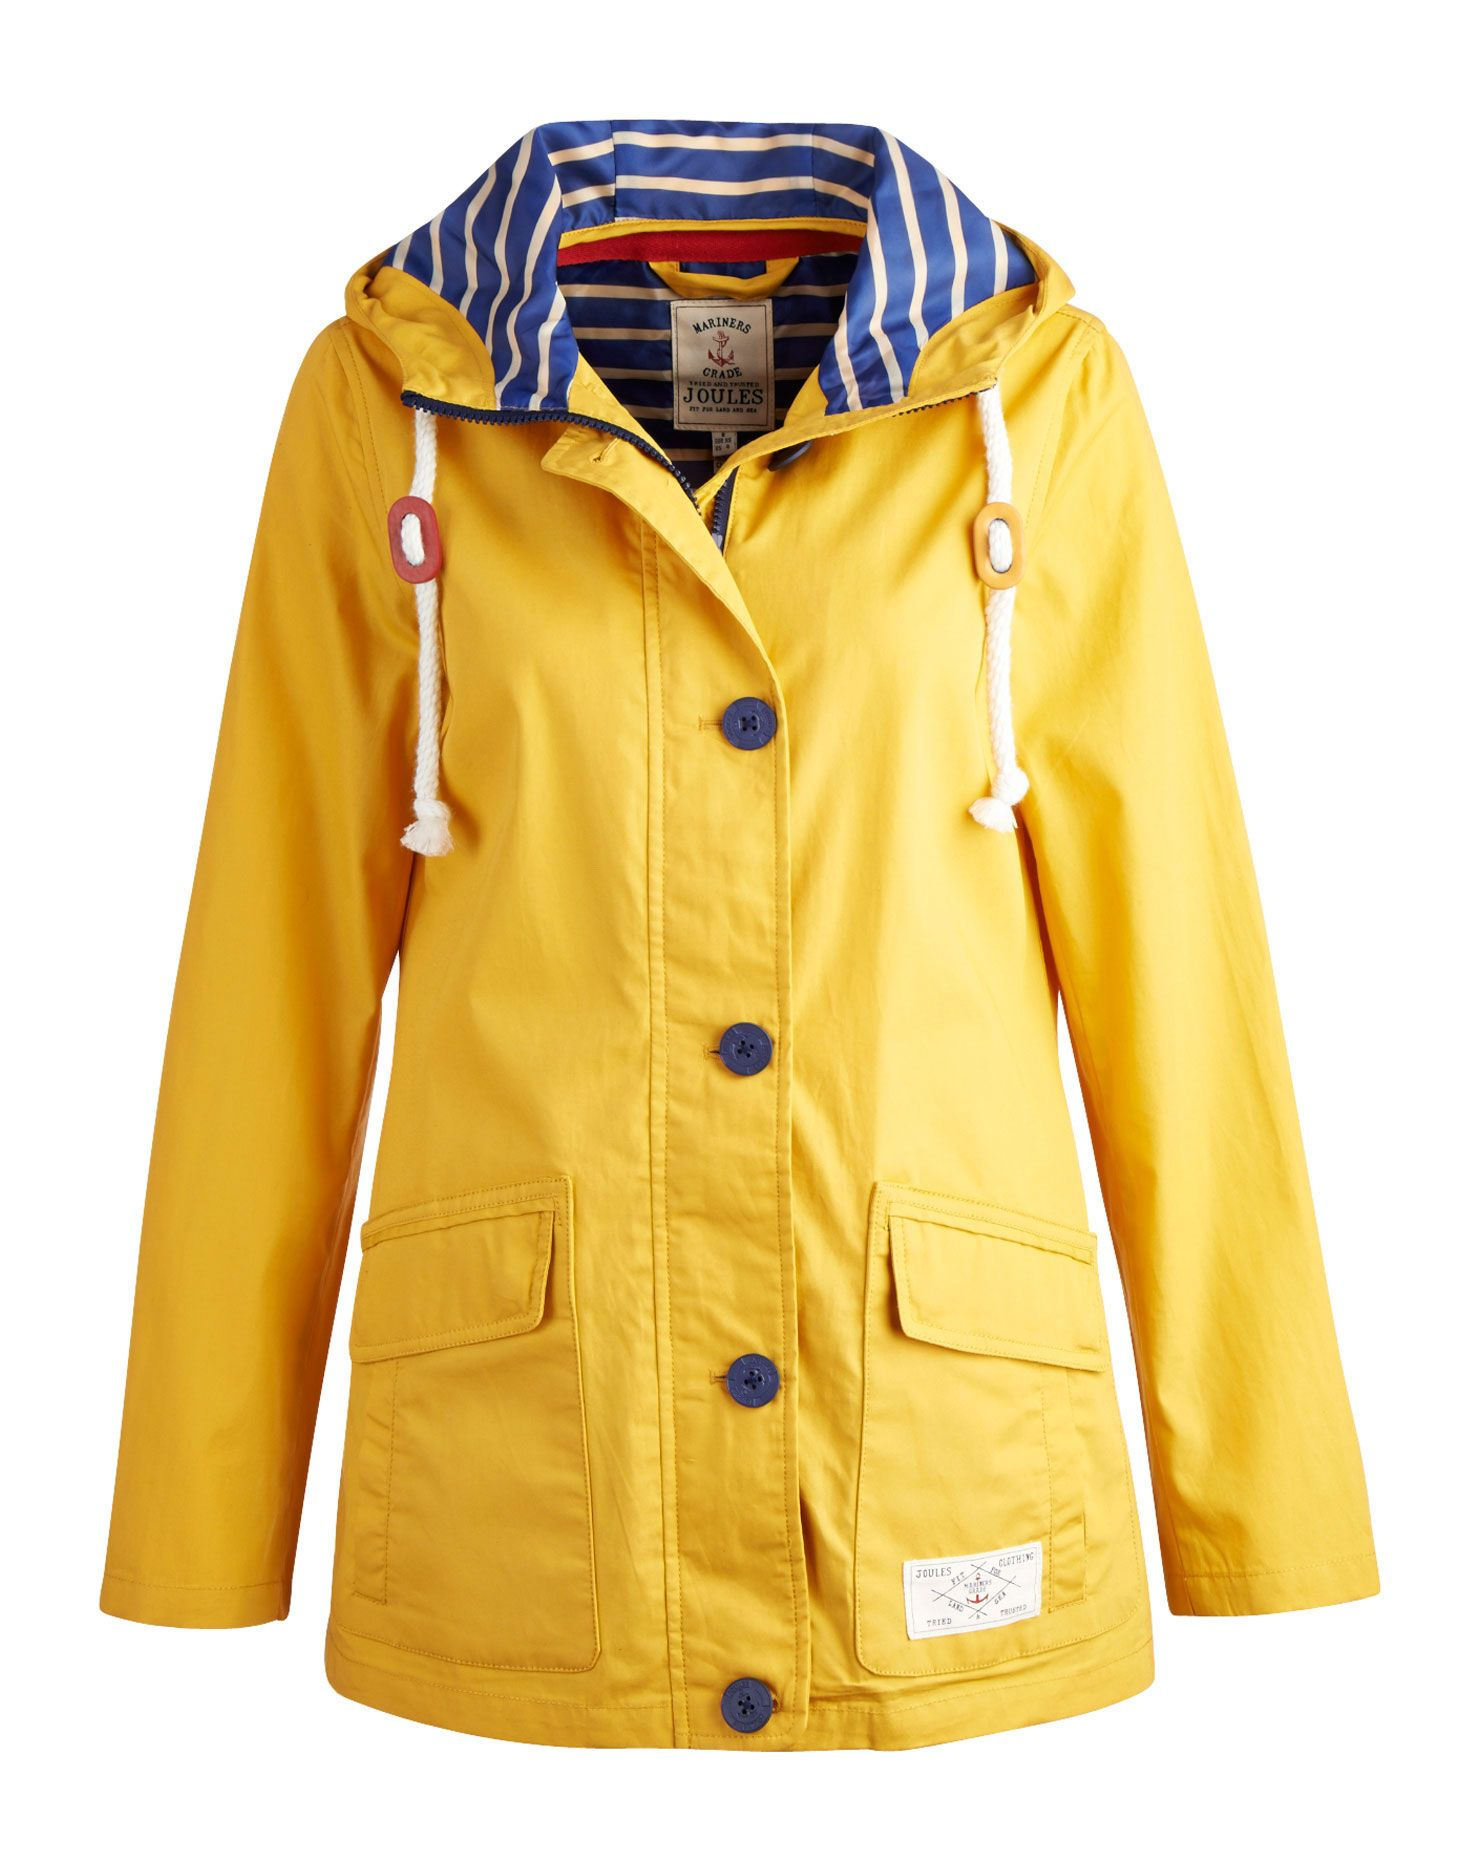 TISBURY Womens Nautical Jacket | Outwear | Pinterest | The o'jays ...